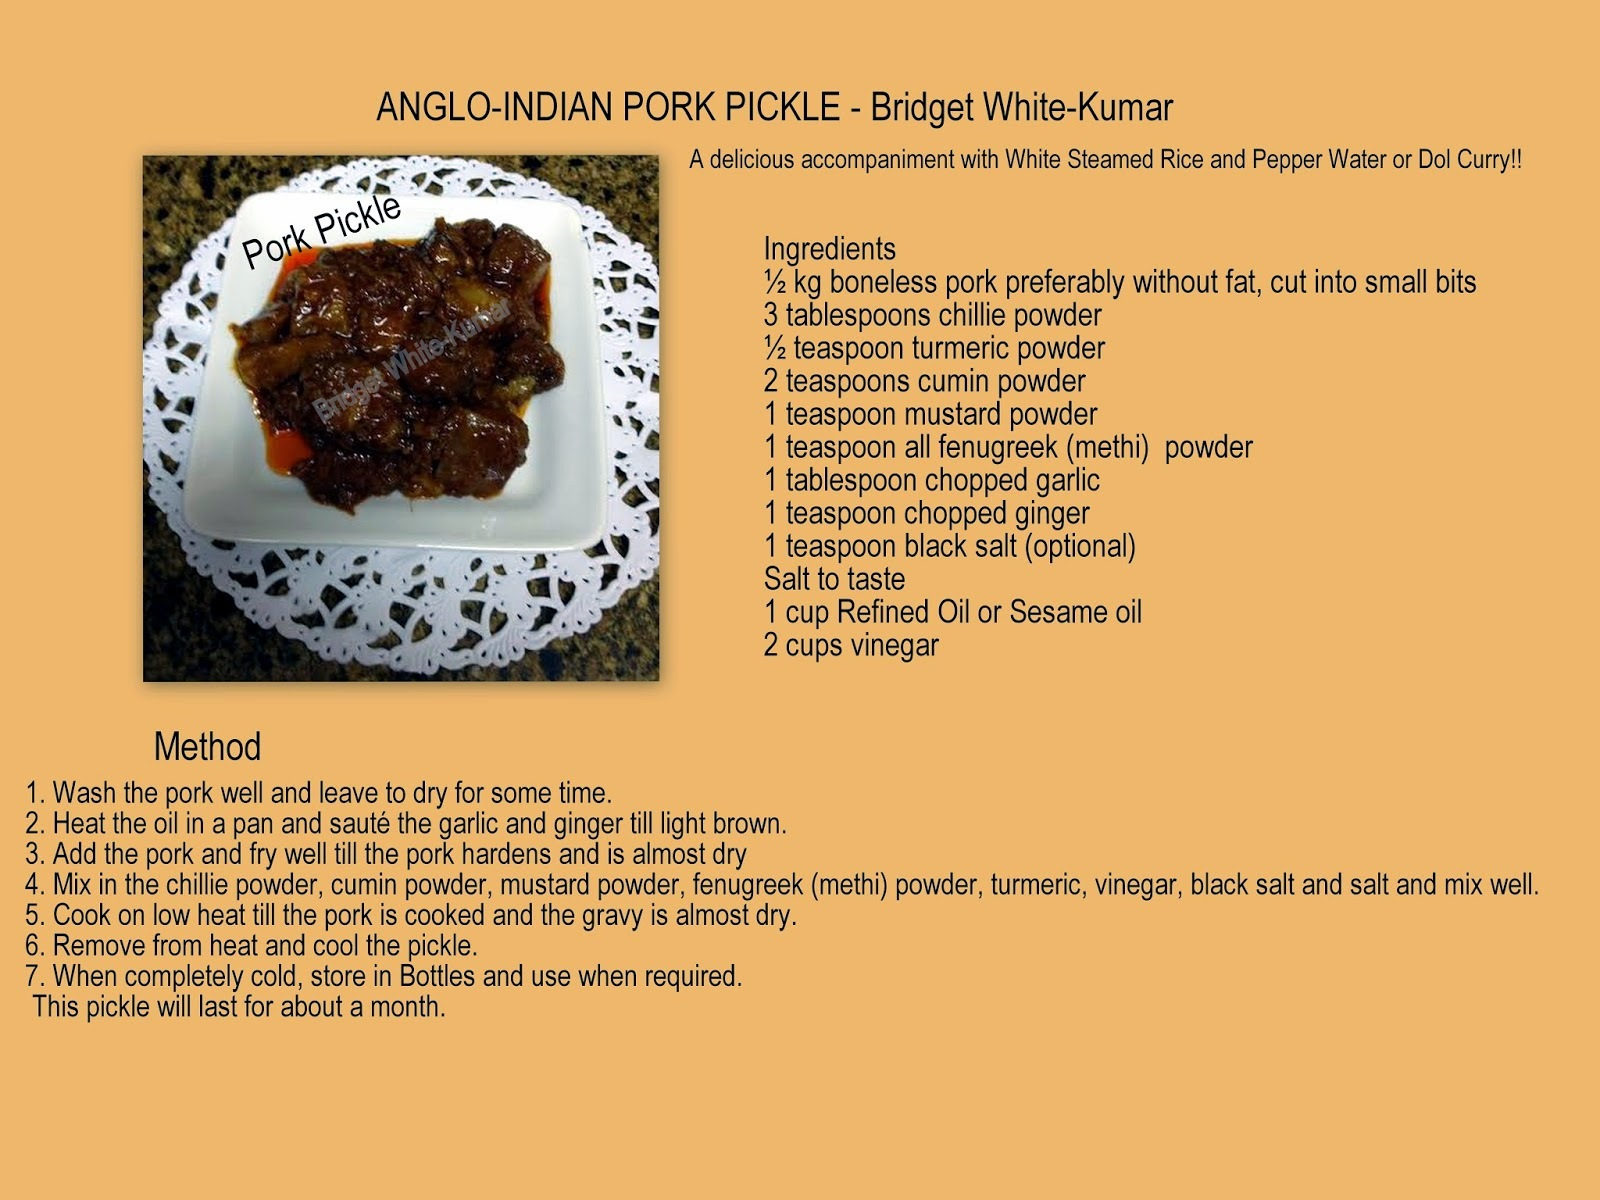 ANGLO-INDIAN PORK PICKLE